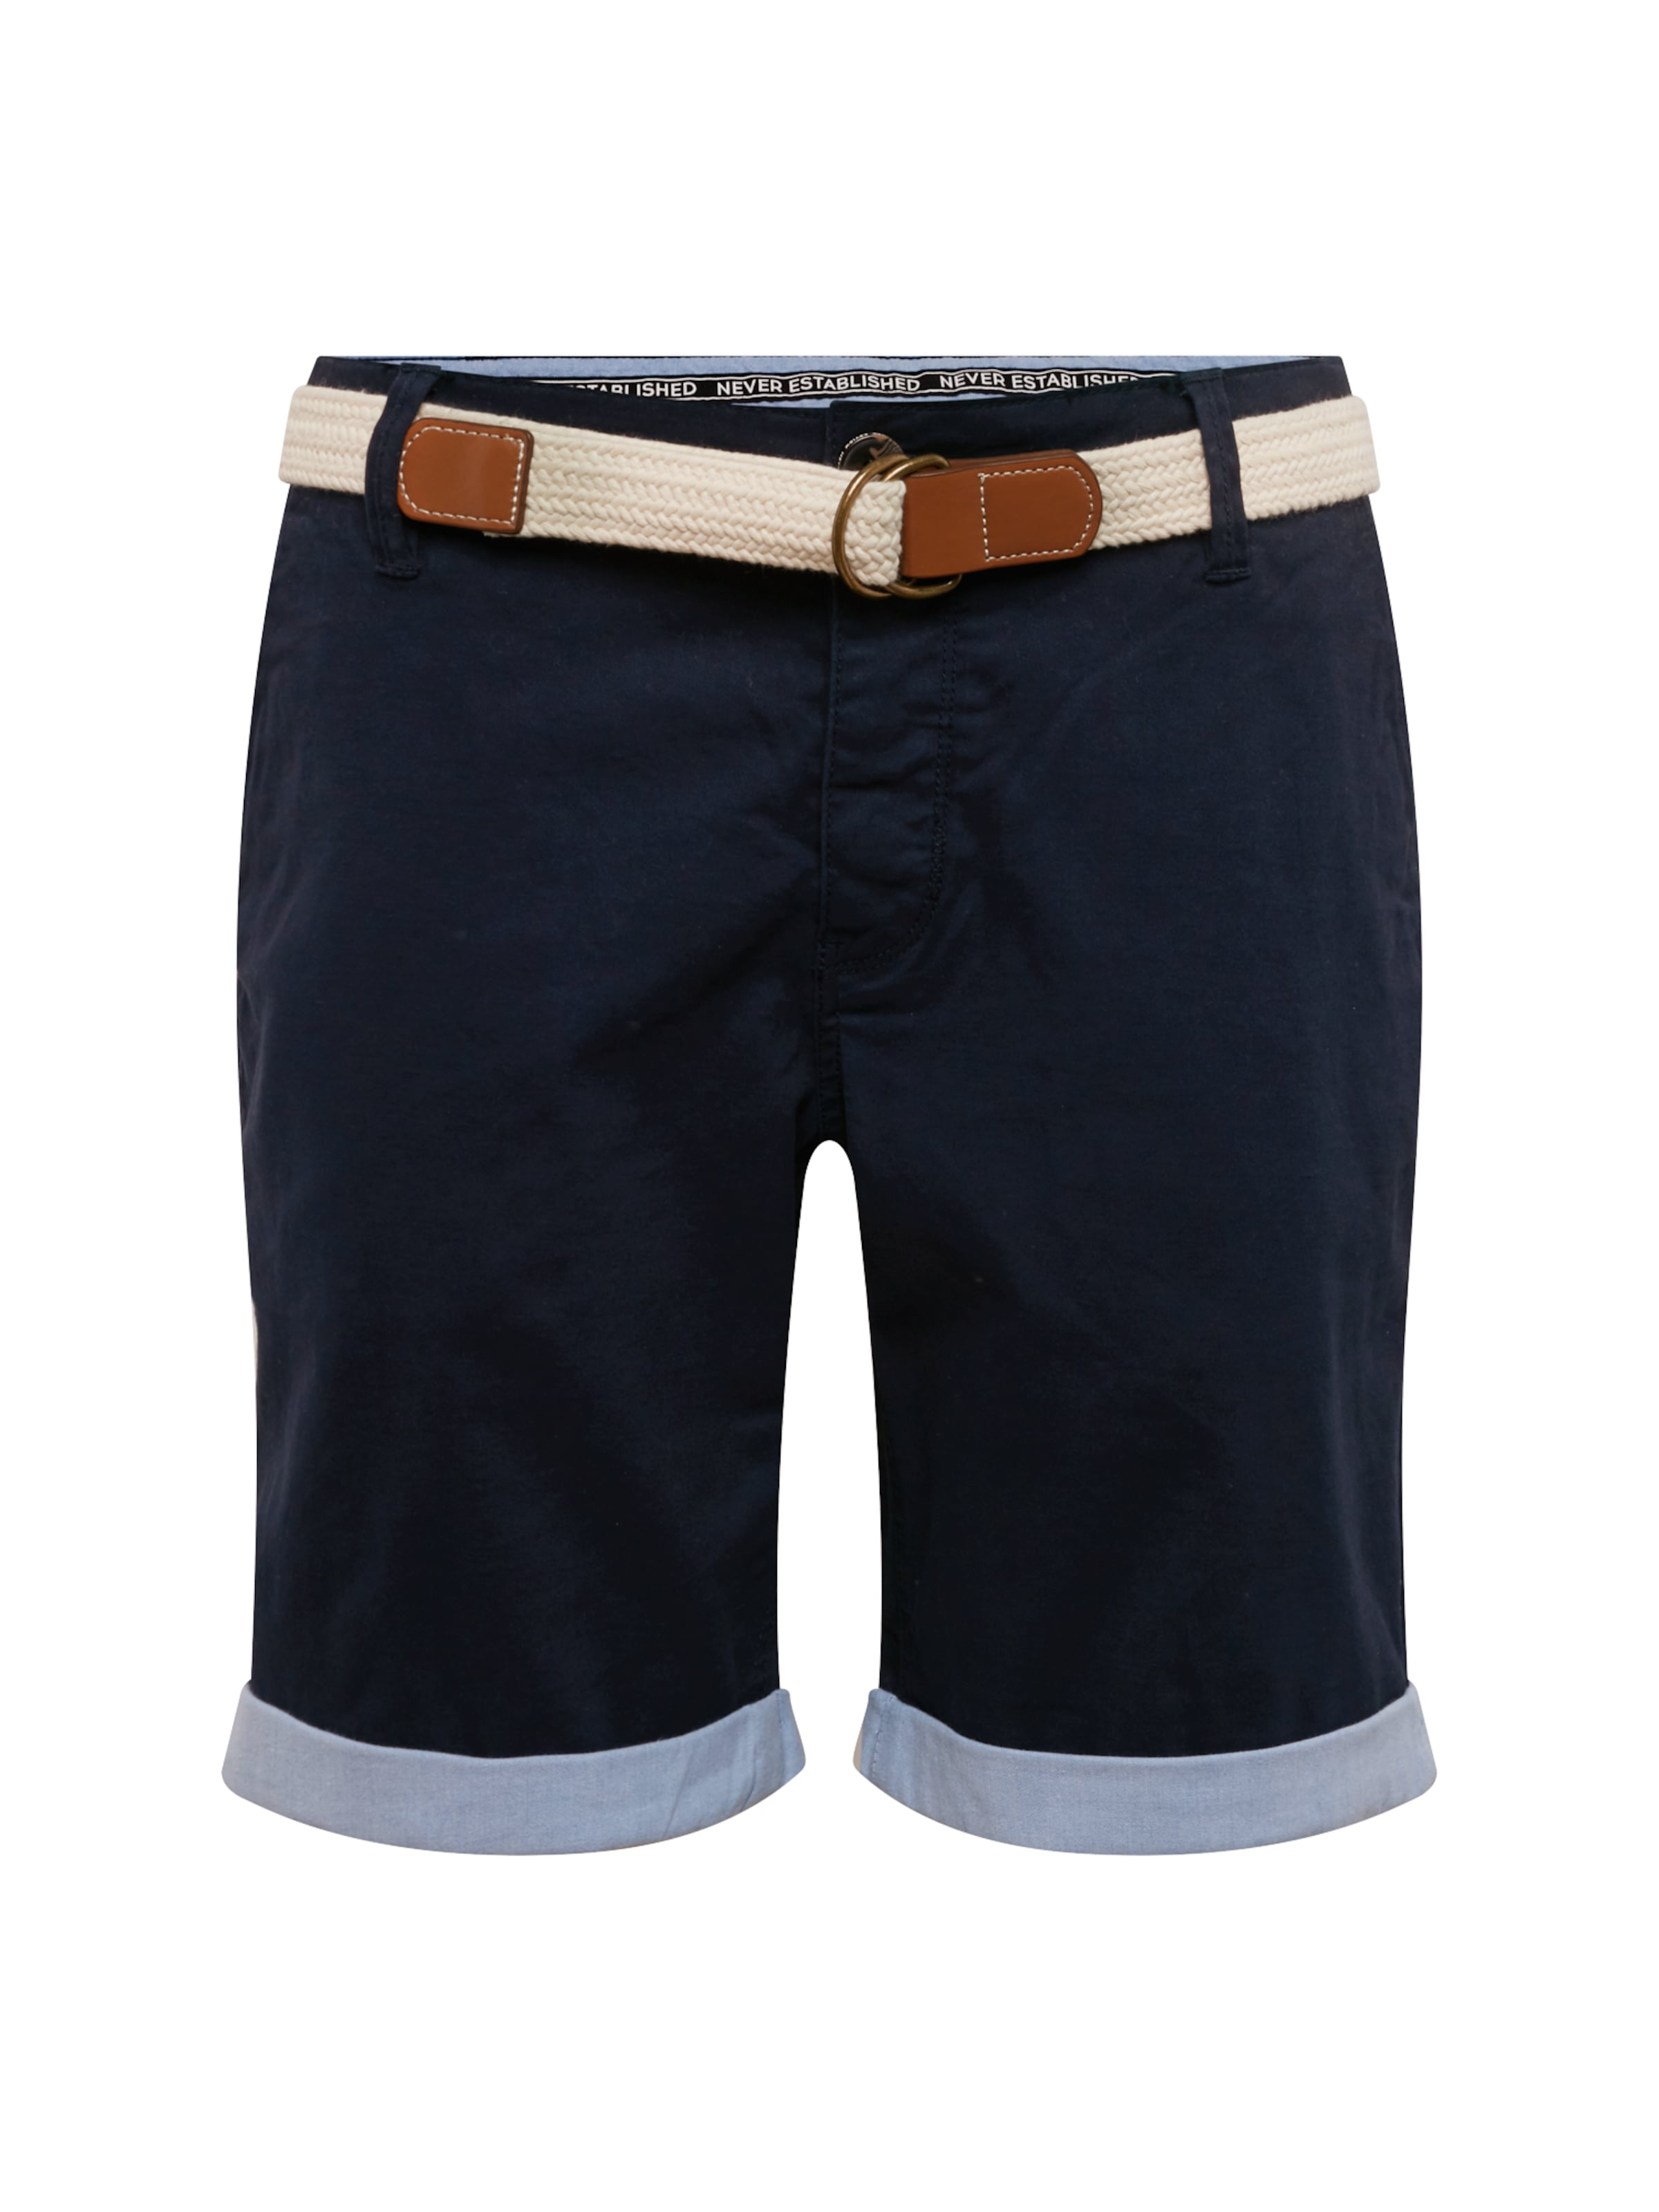 Chinohose 'chinorollupstret' Review Navy In Navy 'chinorollupstret' In Review Chinohose w0nvNym8O